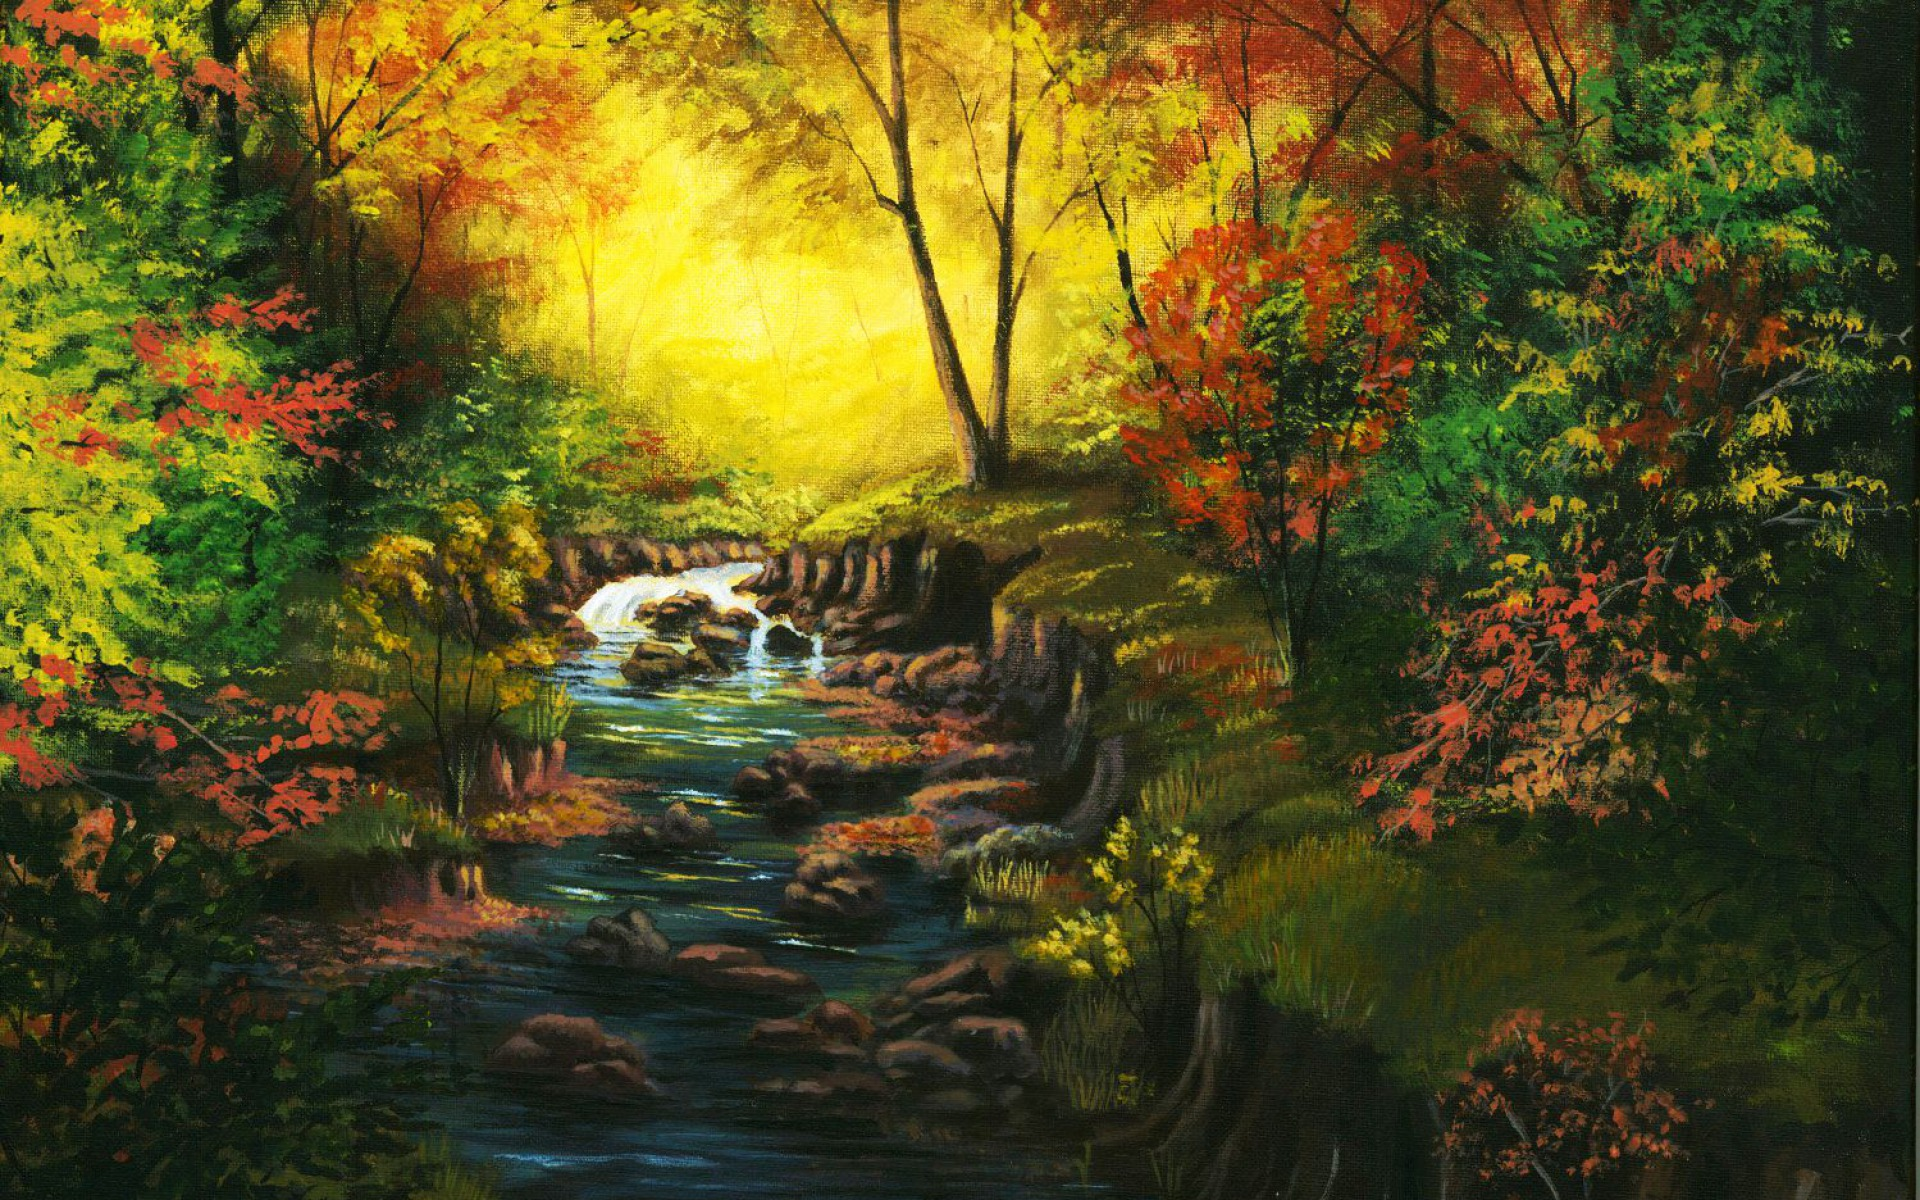 Amazing Autumn Forest & Creek wallpapers | Amazing Autumn ...